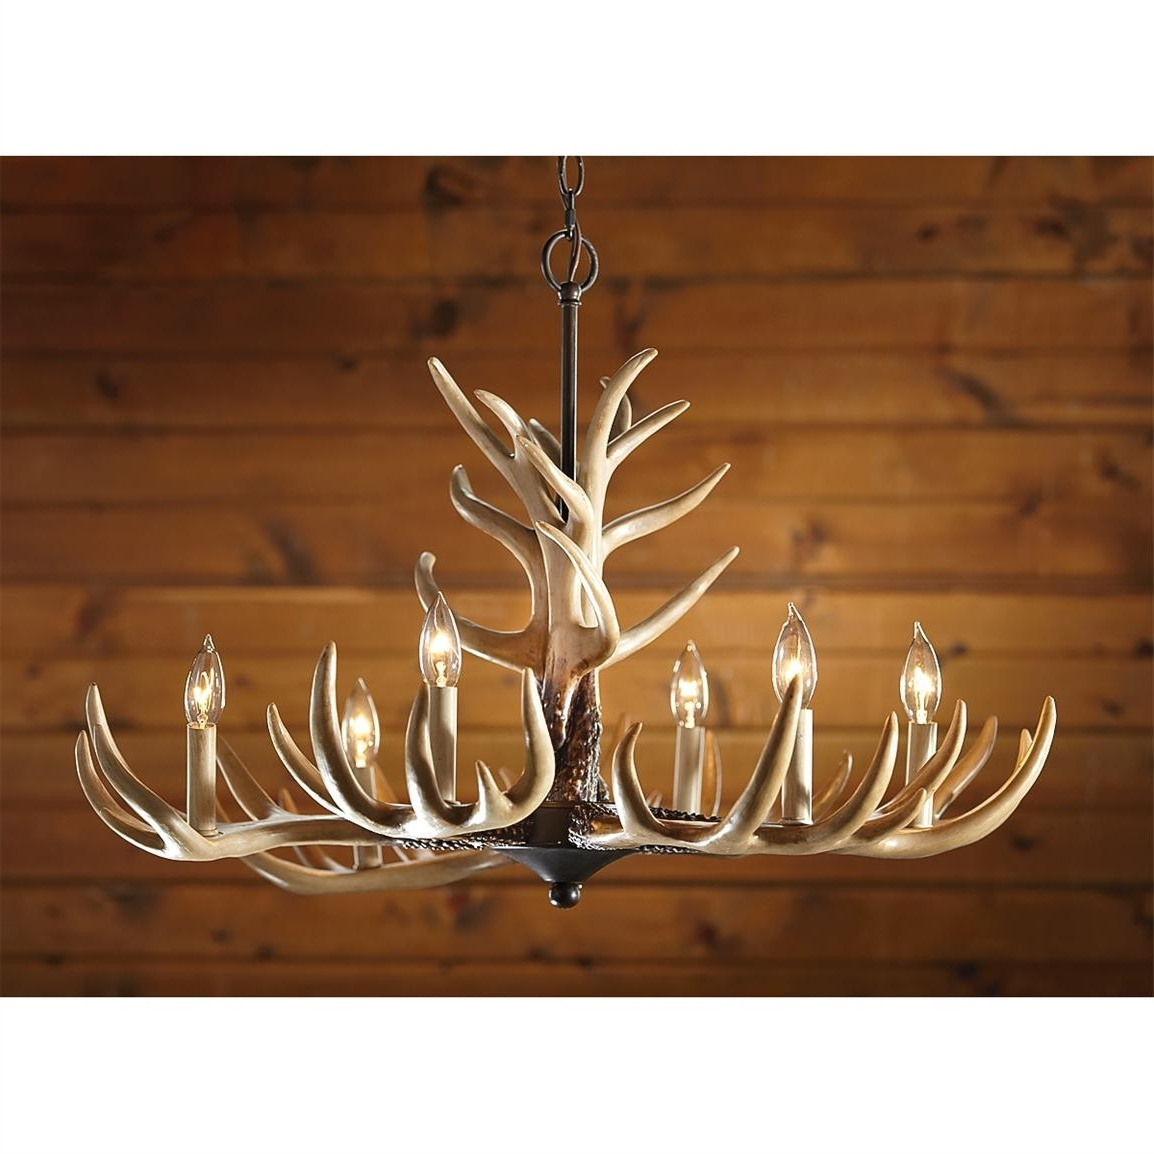 Antlers Chandeliers Within Well Known Castlecreek 6 Light Whitetail Antler Chandelier – 226091, Lighting (View 5 of 15)